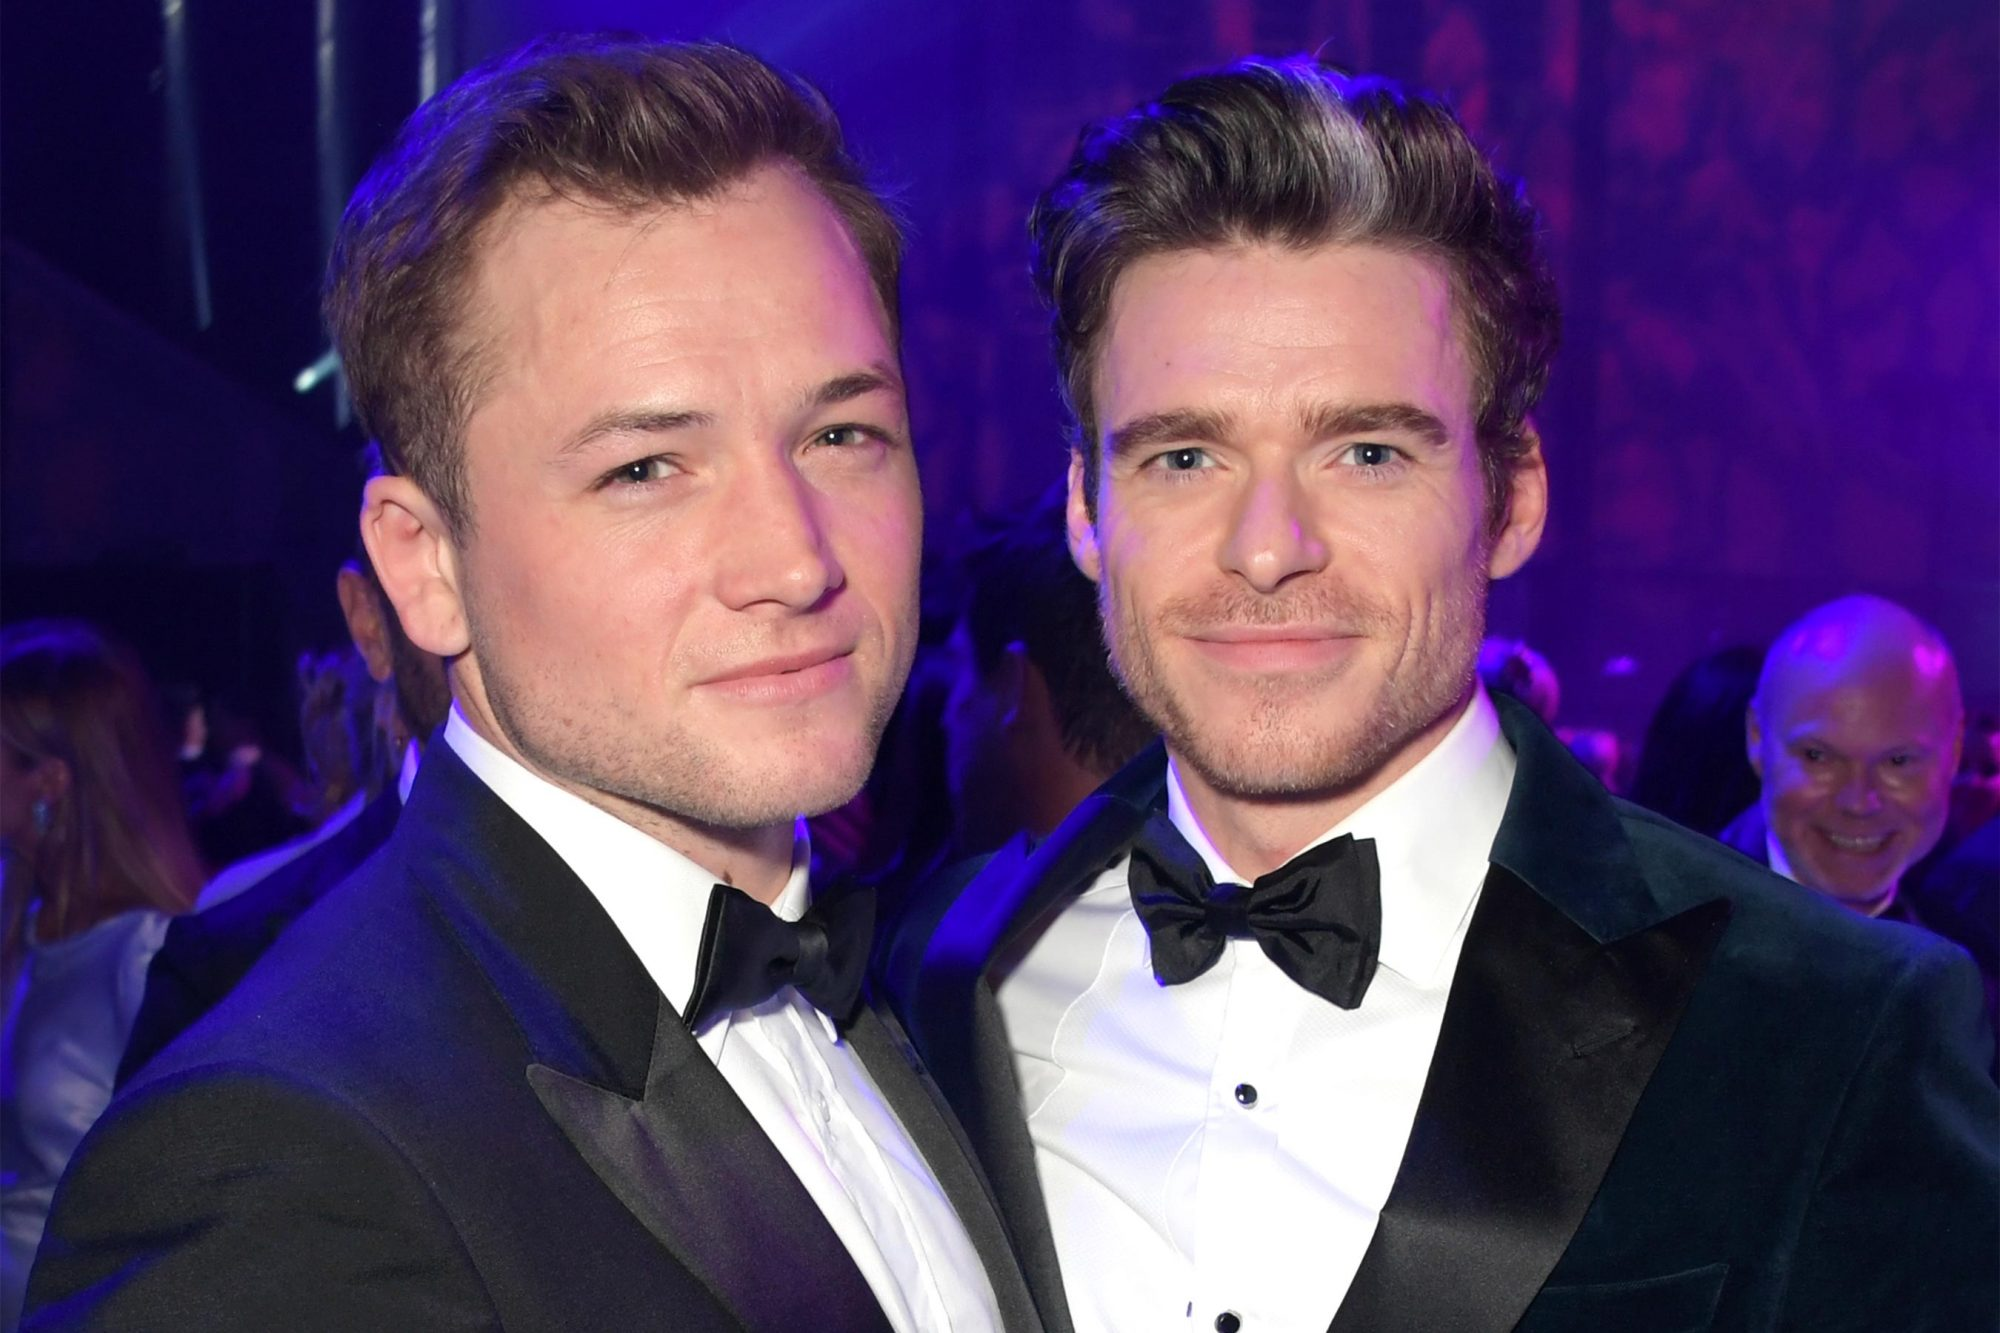 LONDON, ENGLAND - SEPTEMBER 03: Taron Egerton and Richard Madden attend the the GQ Men Of The Year Awards 2019 in association with HUGO BOSS at the Tate Modern on September 3, 2019 in London, England. (Photo by David M. Benett/Dave Benett/Getty Images for HUGO BOSS)